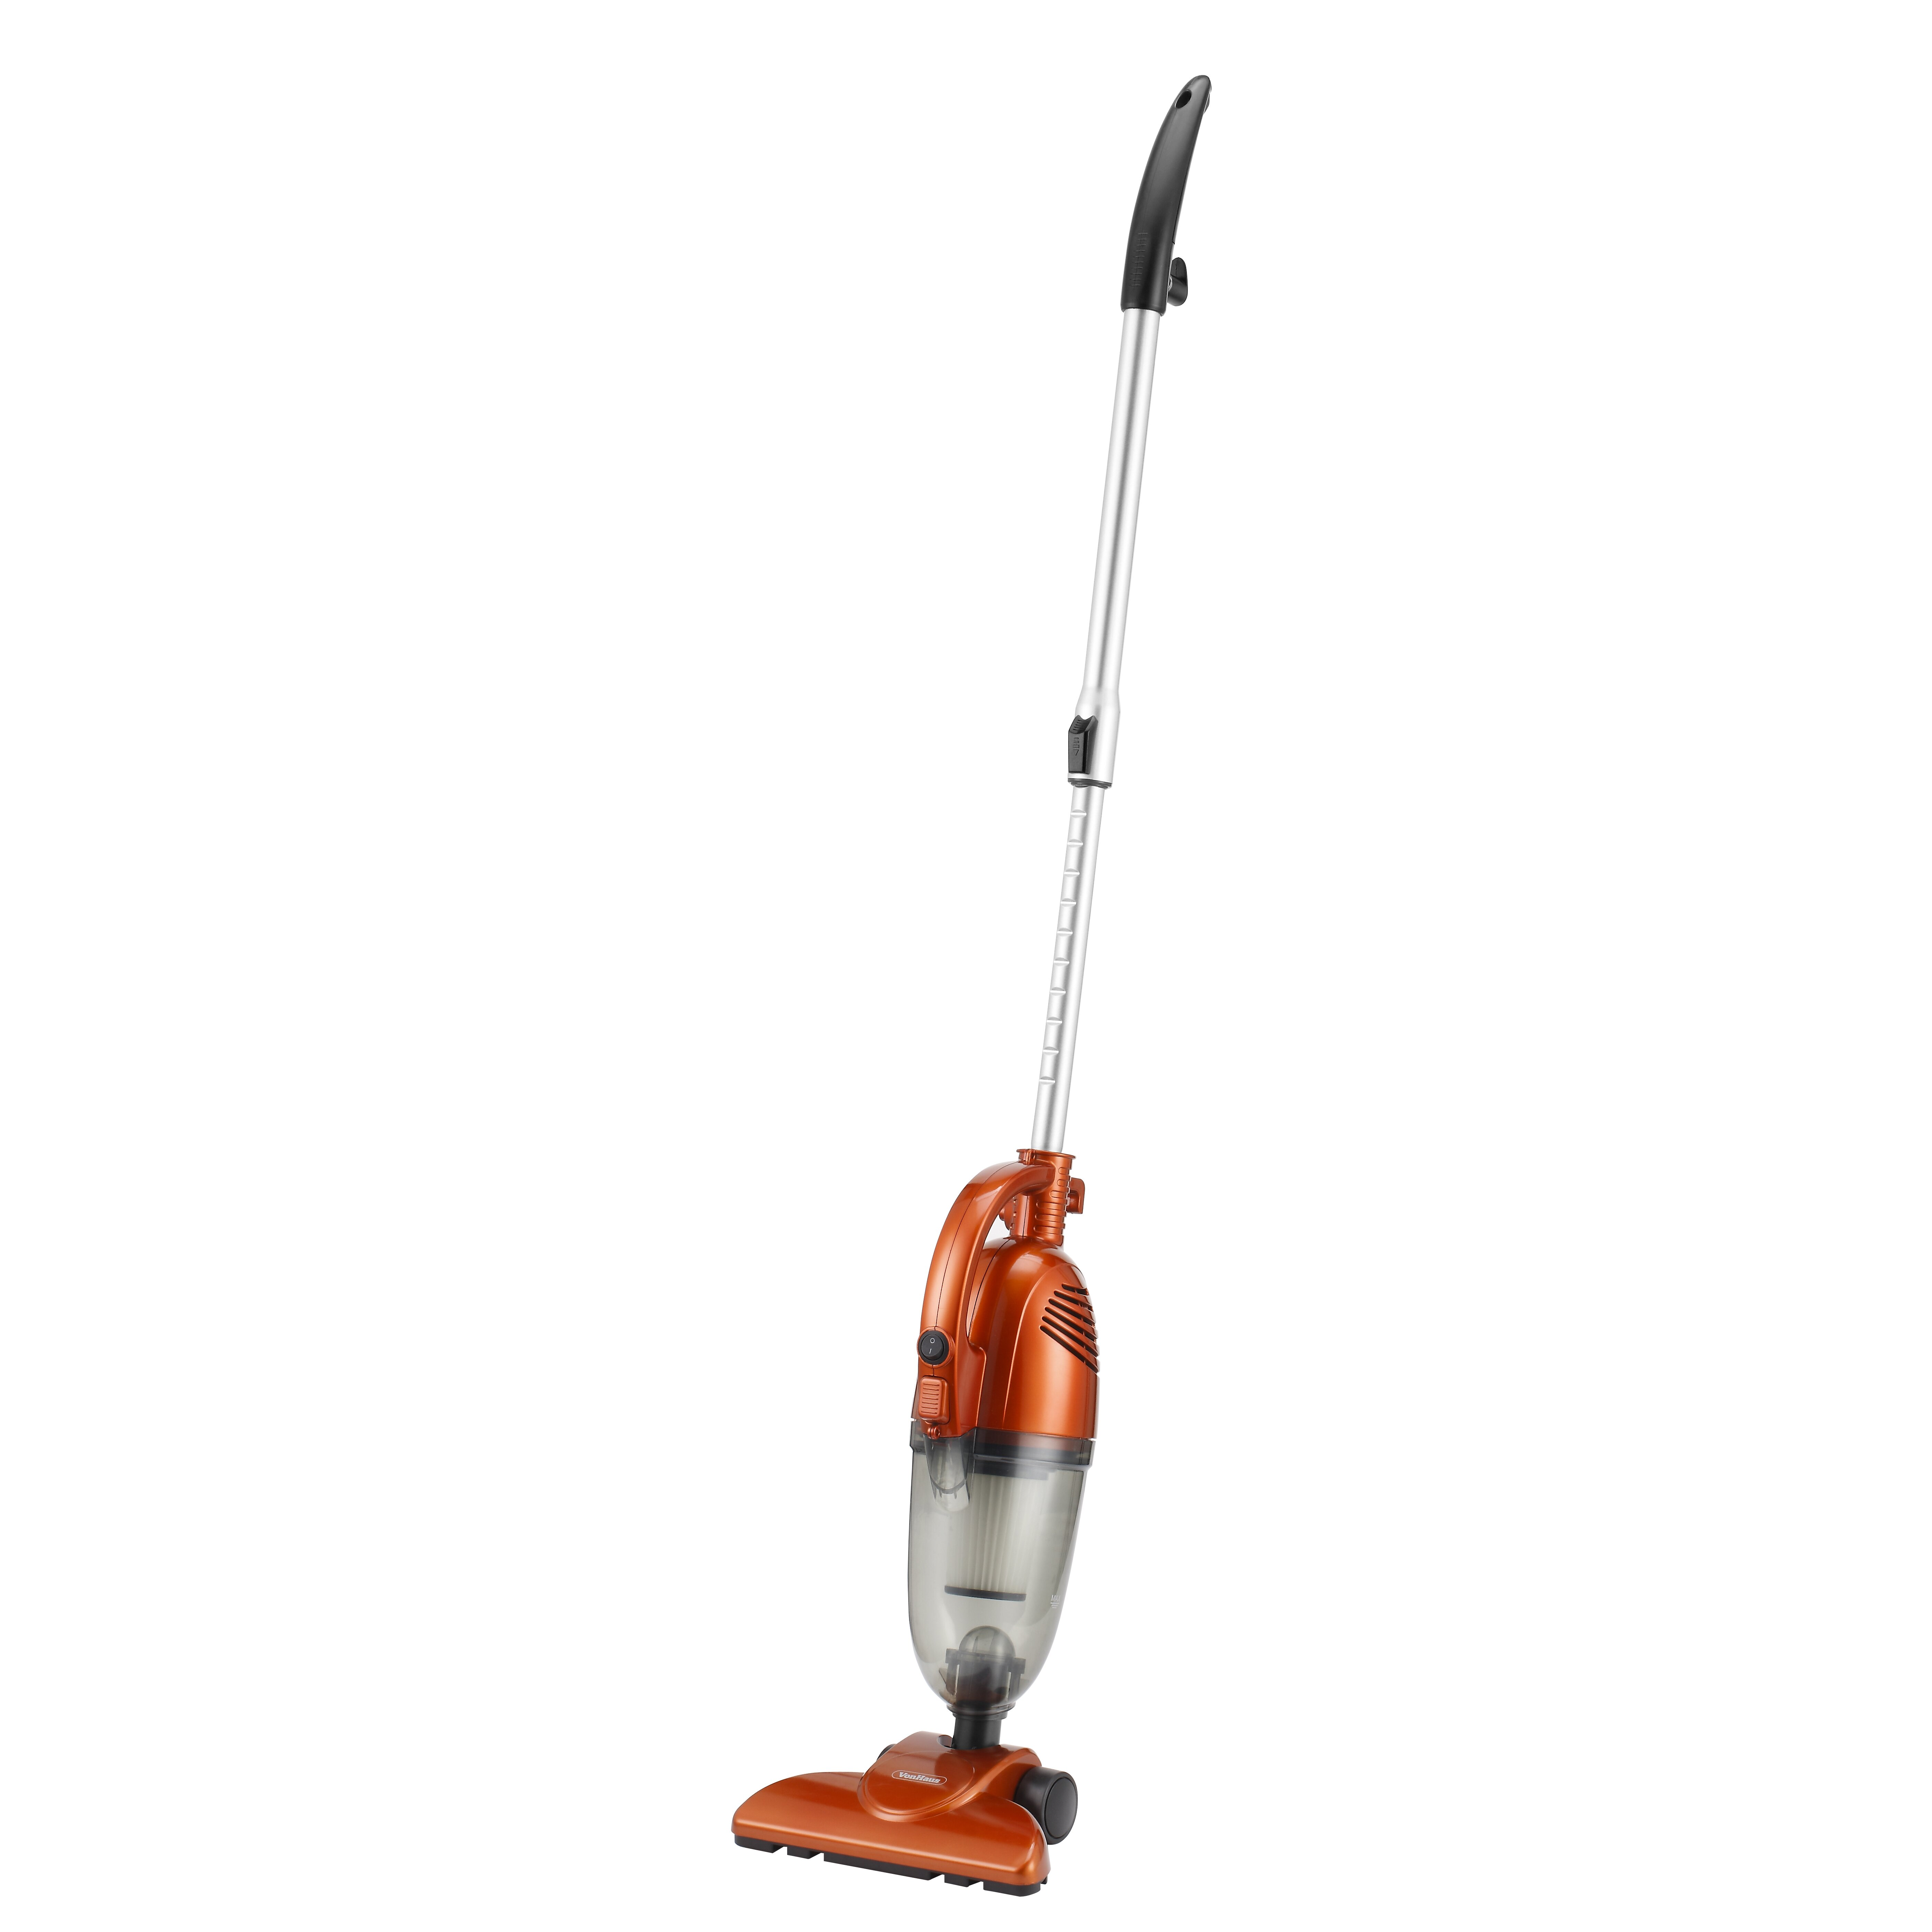 Vonhaus Upright Stick And Handheld Vacuum Cleaner Wayfair